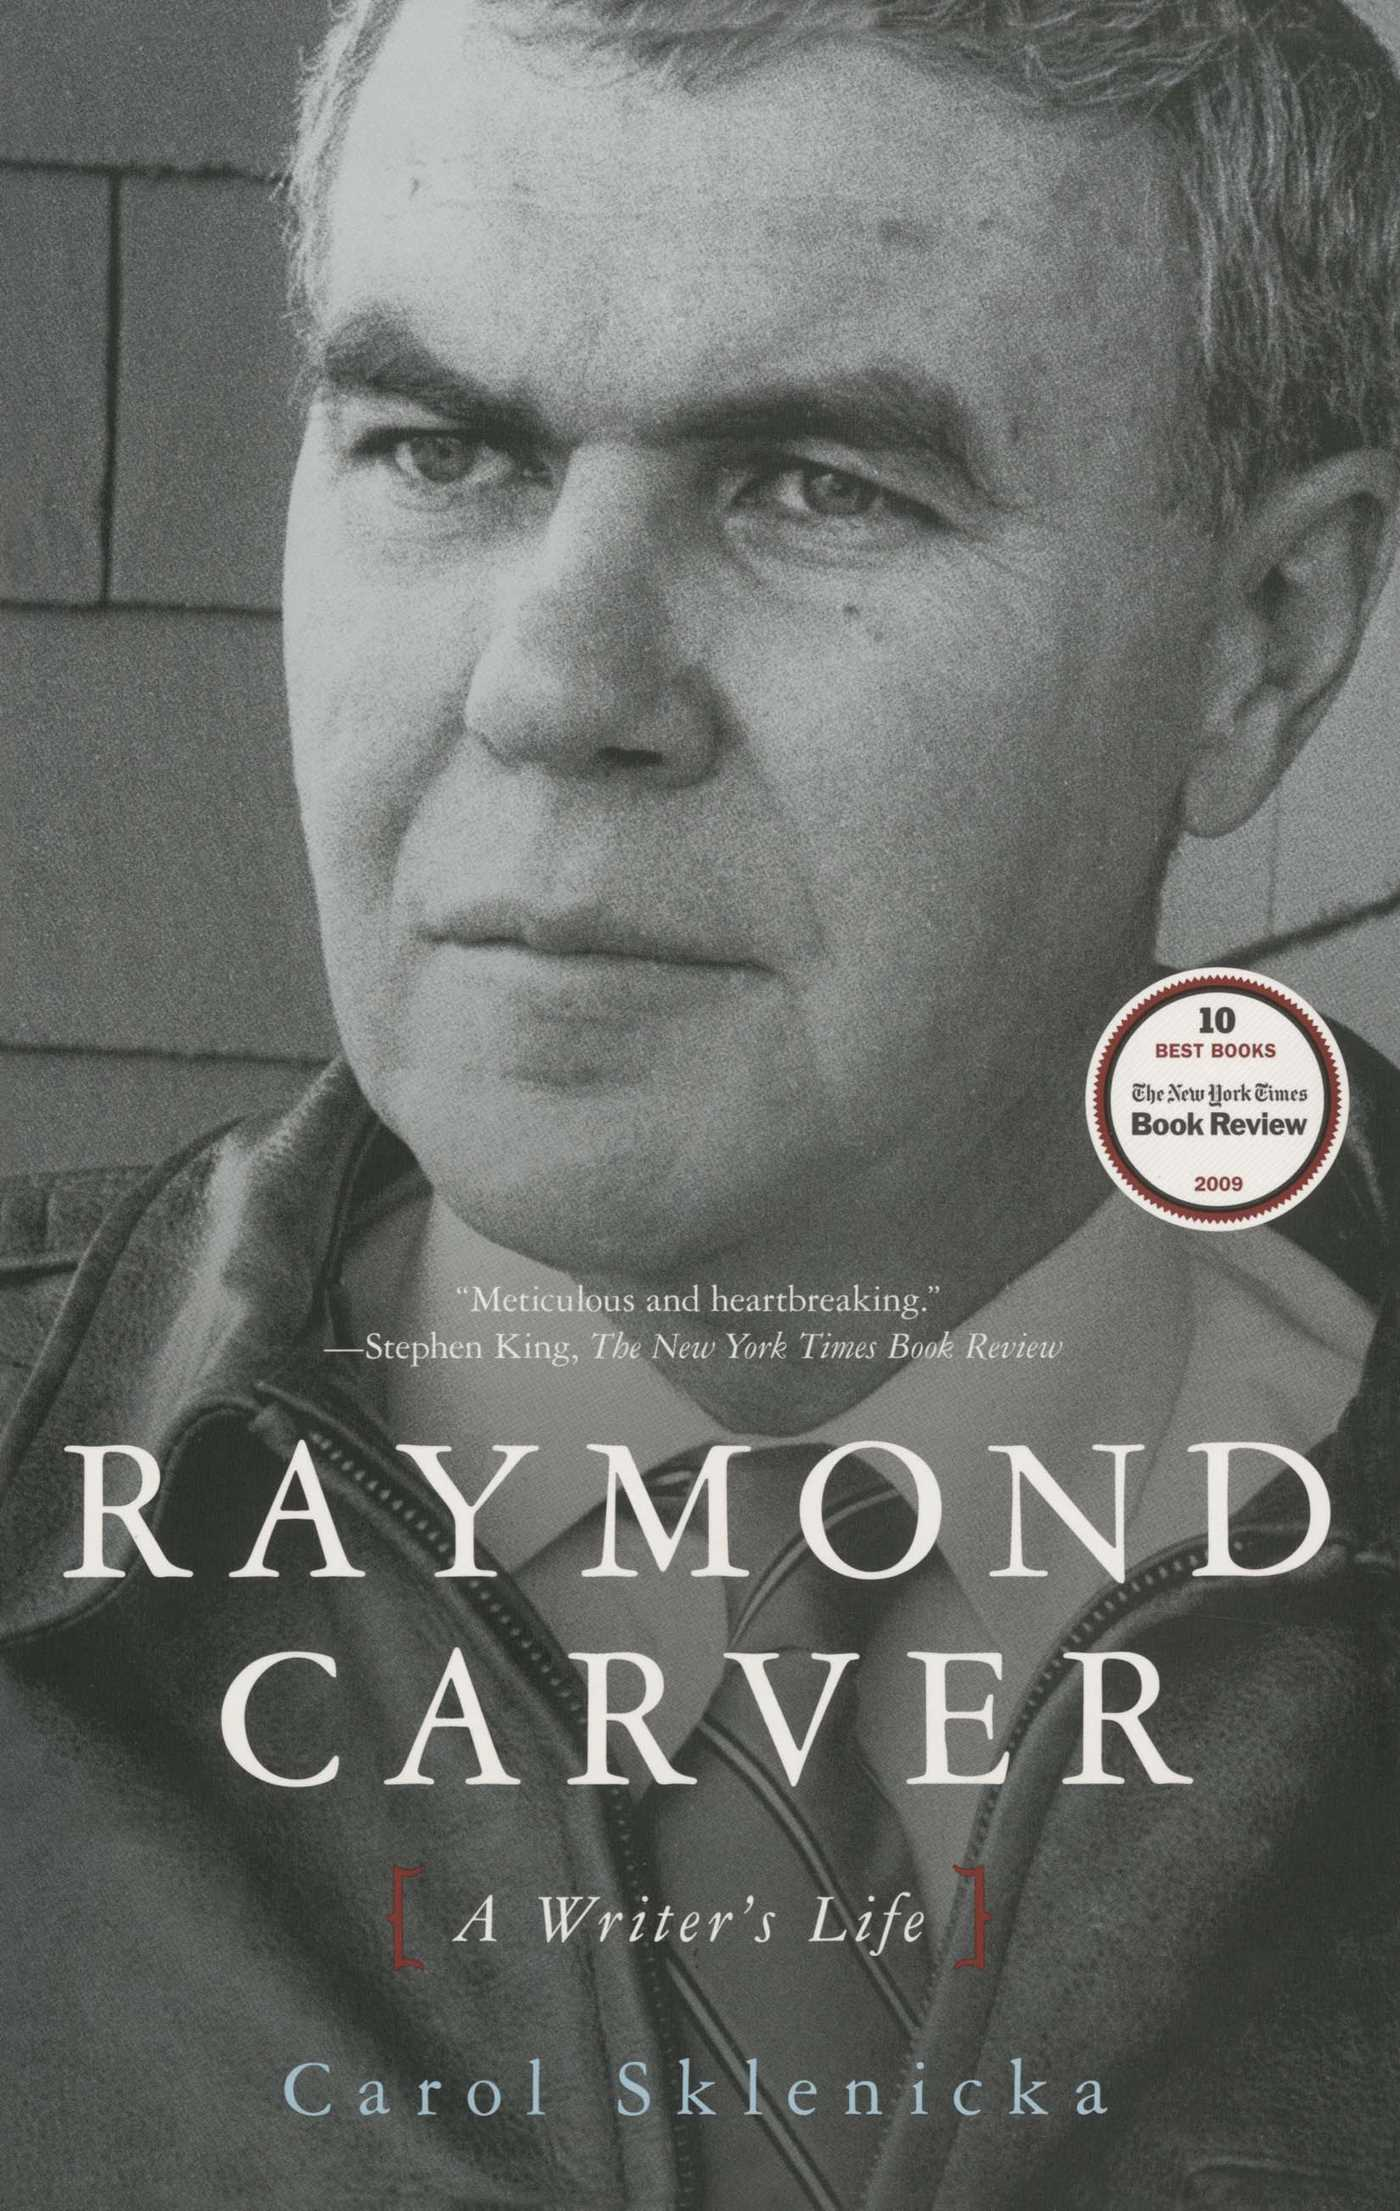 the details in popular mechanics by raymond carver 'popular mechanics,' a very short story by raymond carver, first appeared in playgirl in 1978 the story was included in carver's 1981 collection, what we talk about when we talk about love, and later appeared under the title 'little things' in his 1988 collection, where i'm calling from.